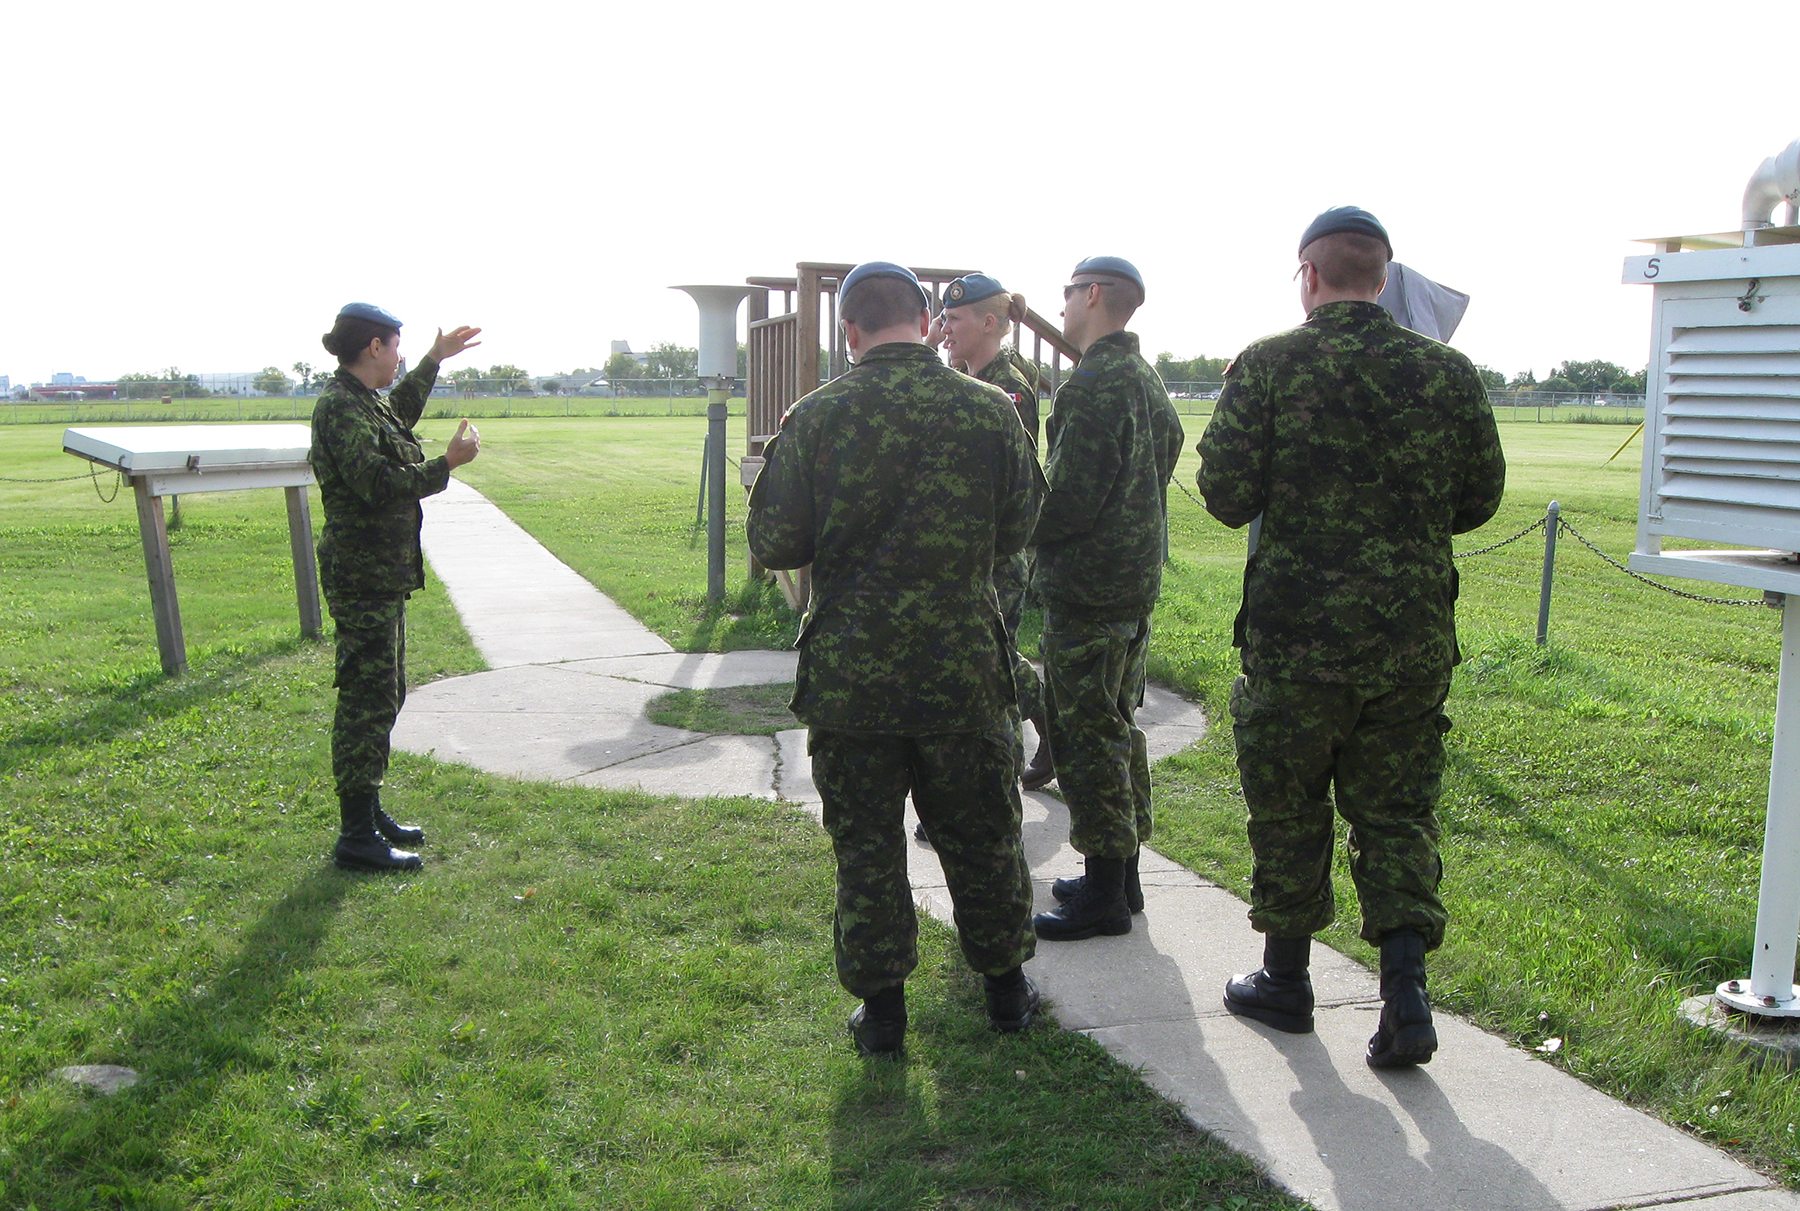 Royal Canadian Air Force meteorology technician Sergeant Caroline Linteau walks her students through the various weather measurement and tracking tools at the Canadian Forces School of Meteorology in Winnipeg, Manitoba. PHOTO: Courtesy Sergeant Caroline Linteau